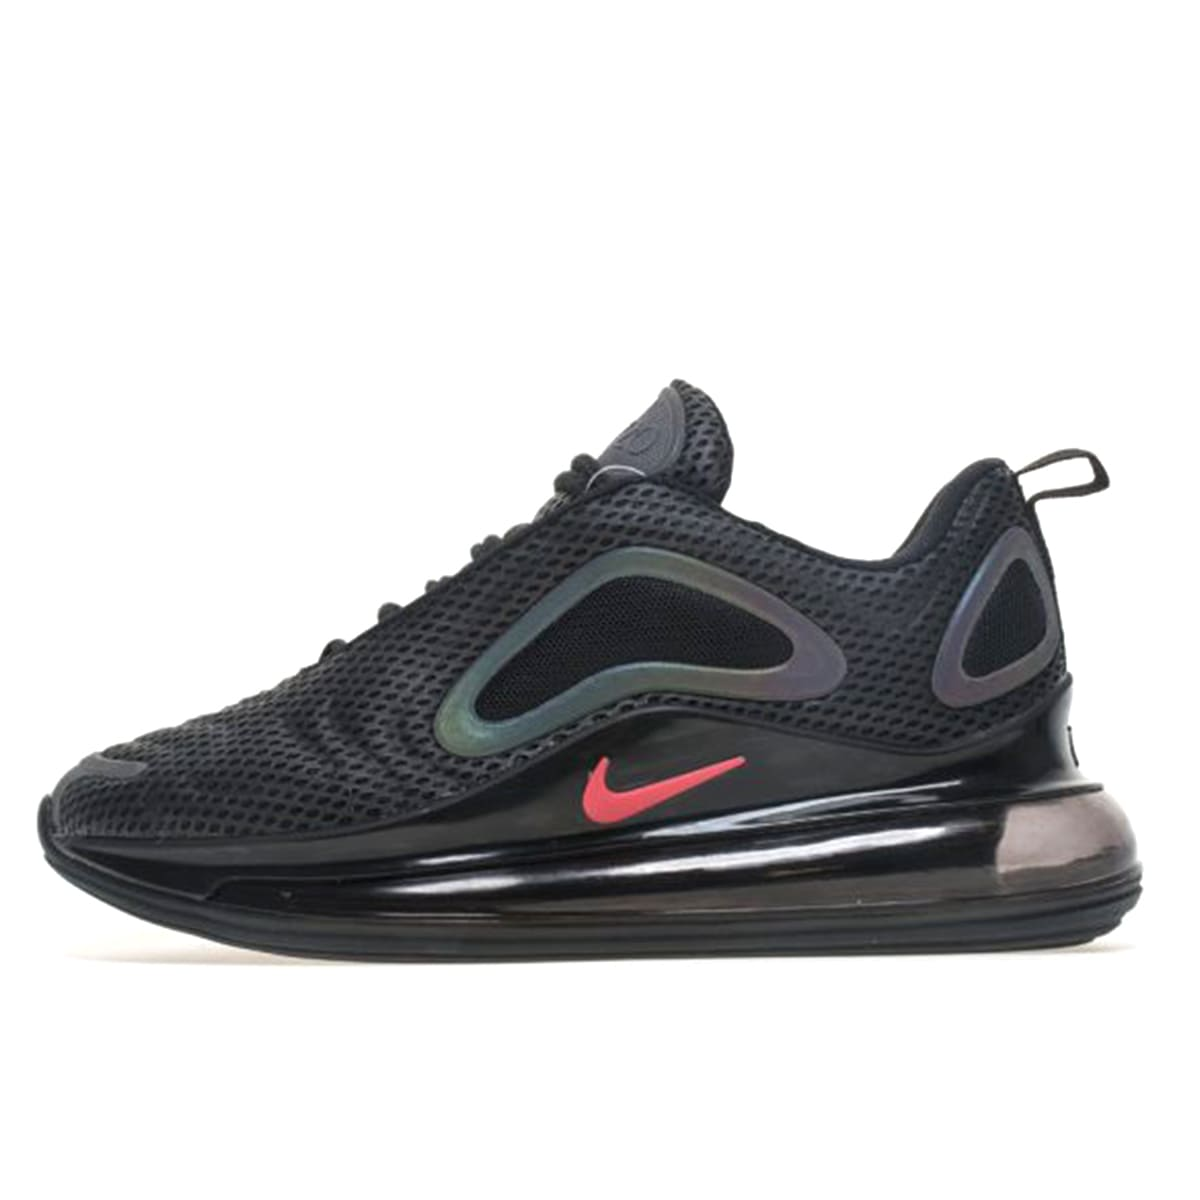 Buy Nike Air Max 720 sneakers